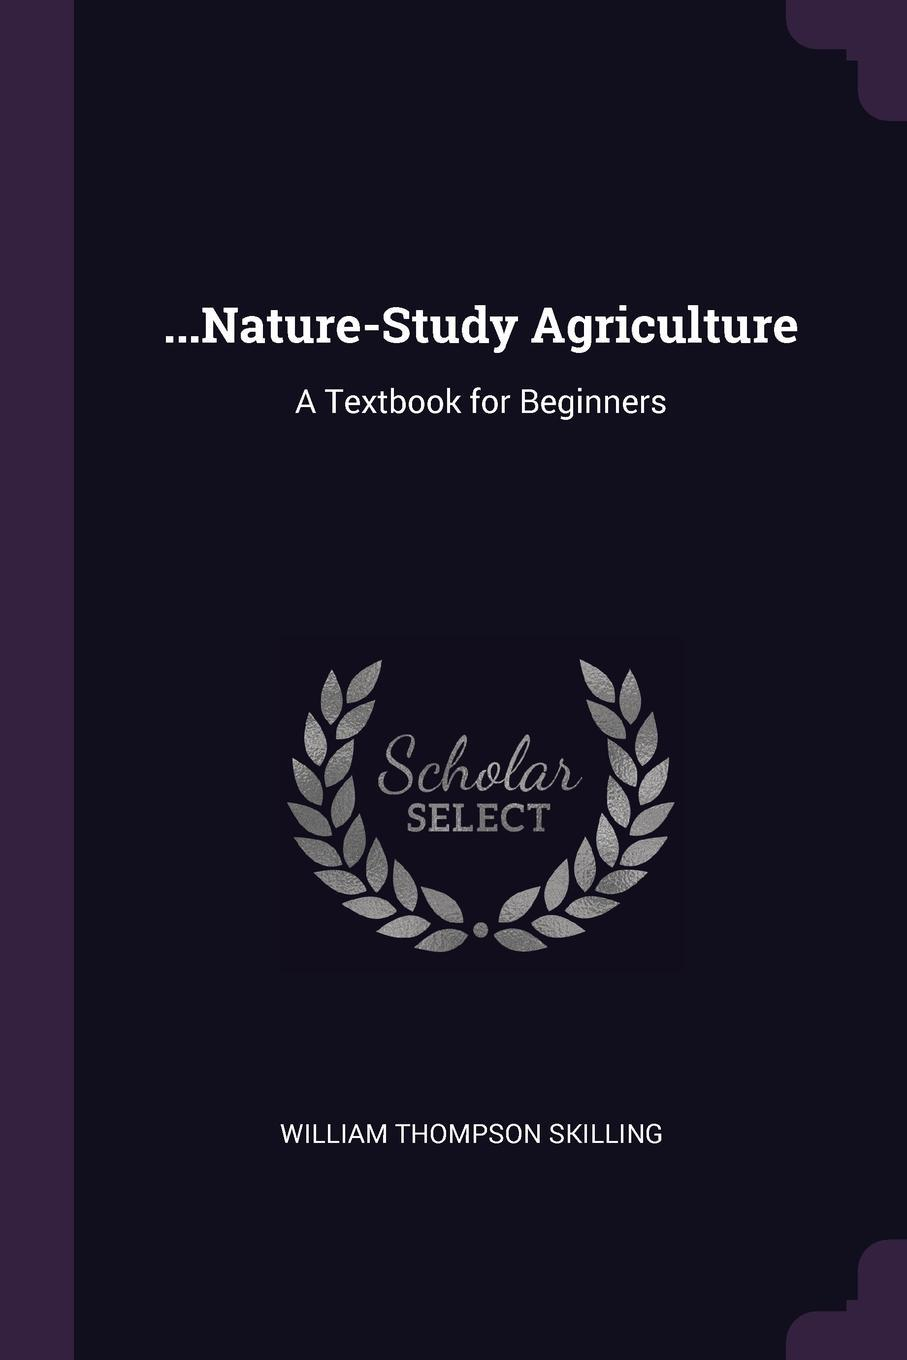 William Thompson Skilling. ...Nature-Study Agriculture. A Textbook for Beginners